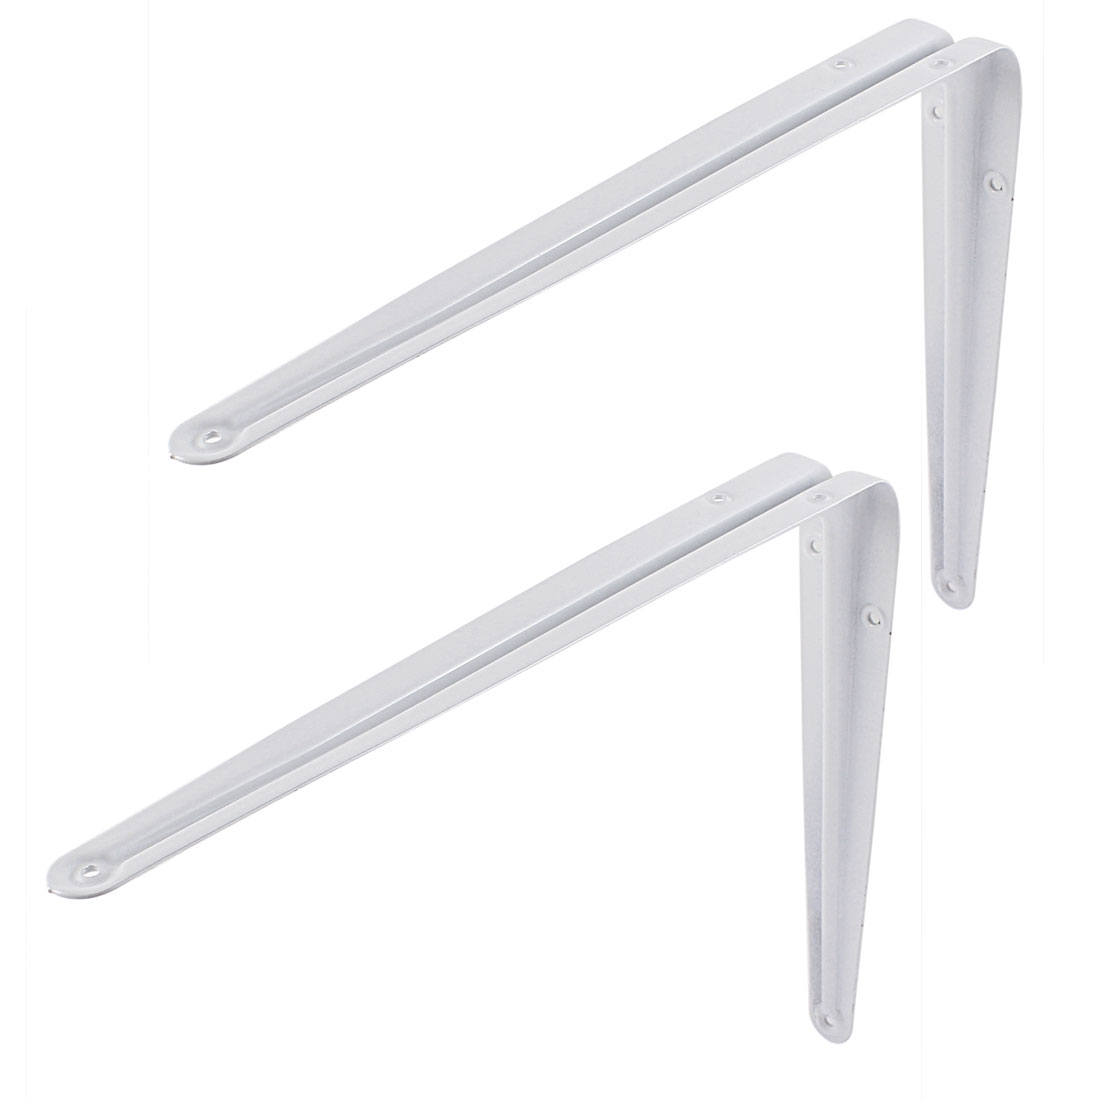 L Shape Baked Enamel Metal Wall Shelf Support Brackets 12 Inch Length 2 Pcs